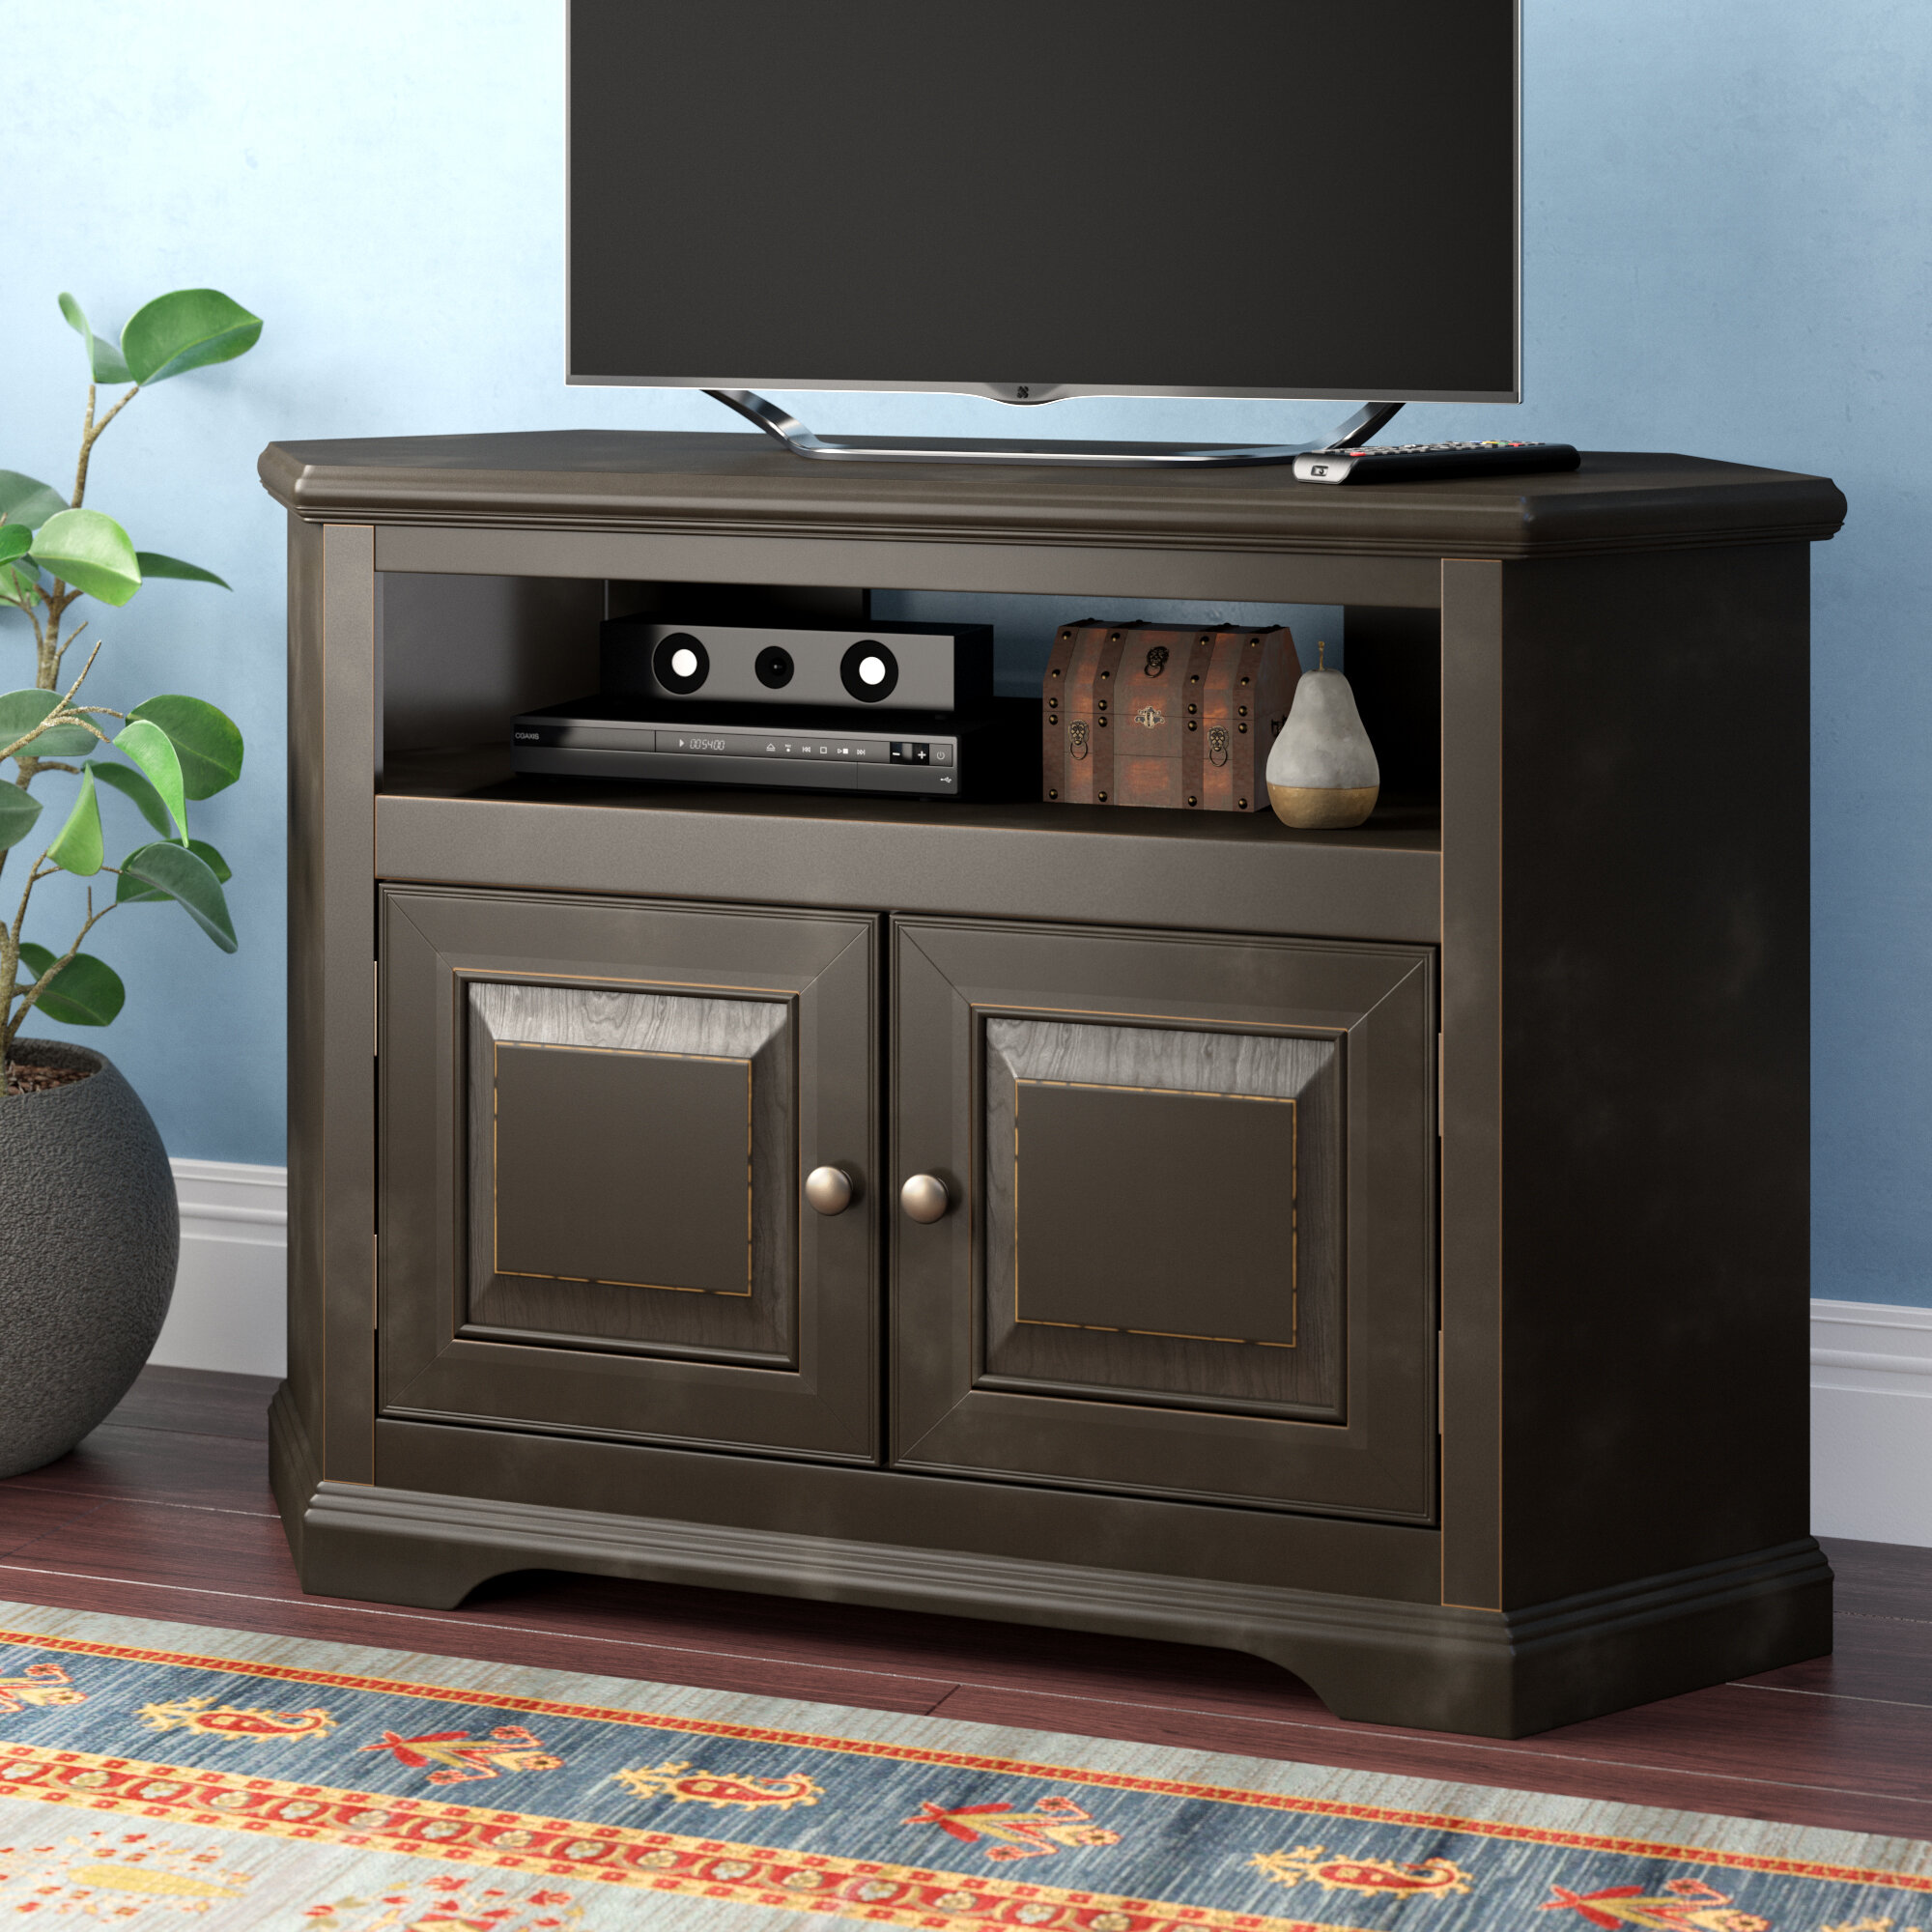 40 49 Inch Corner Tv Stands Entertainment Centers You Ll Love In 2021 Wayfair